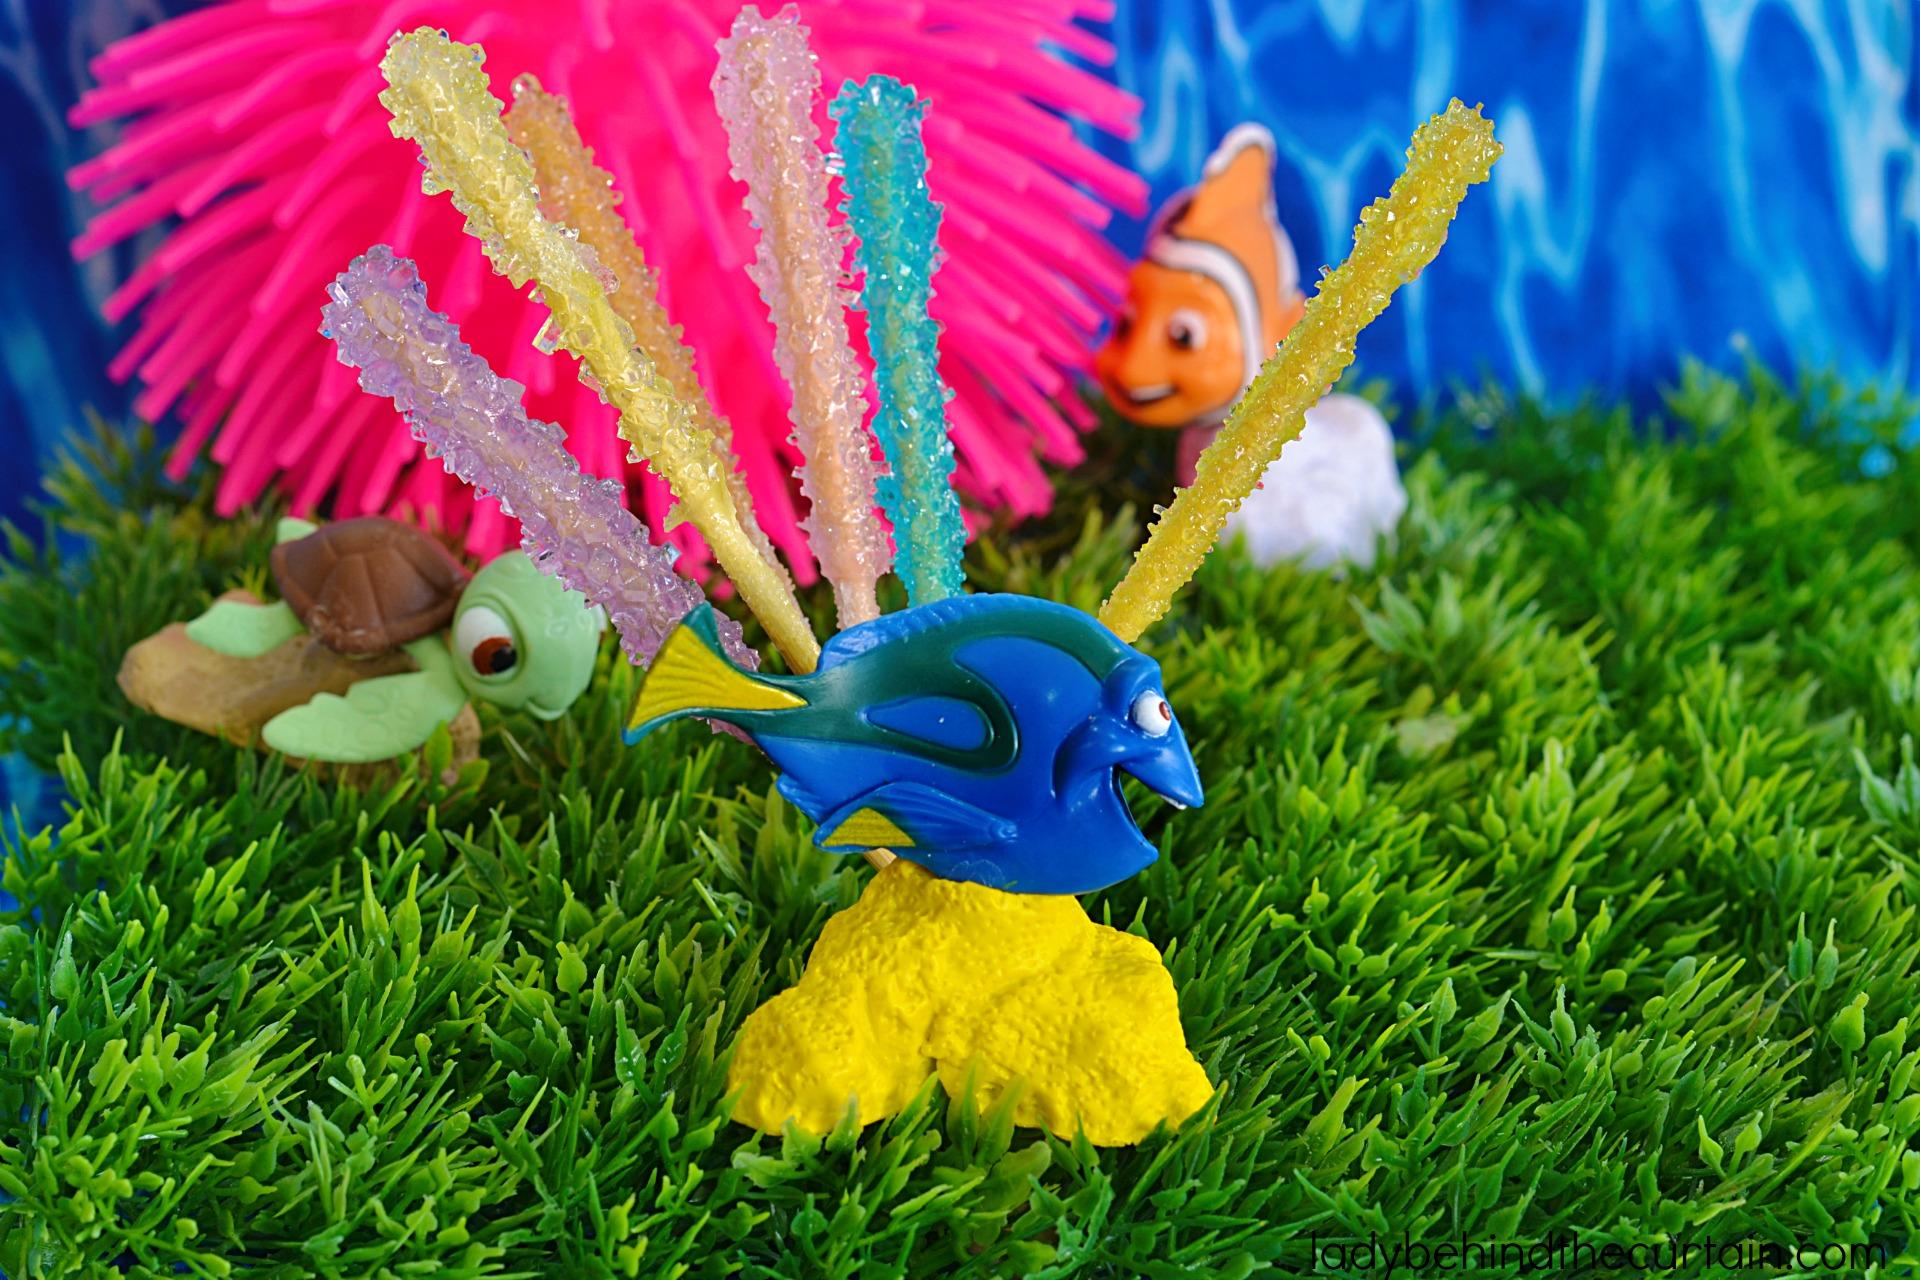 How To Make Finding Dory Coral Reef Rock Candy